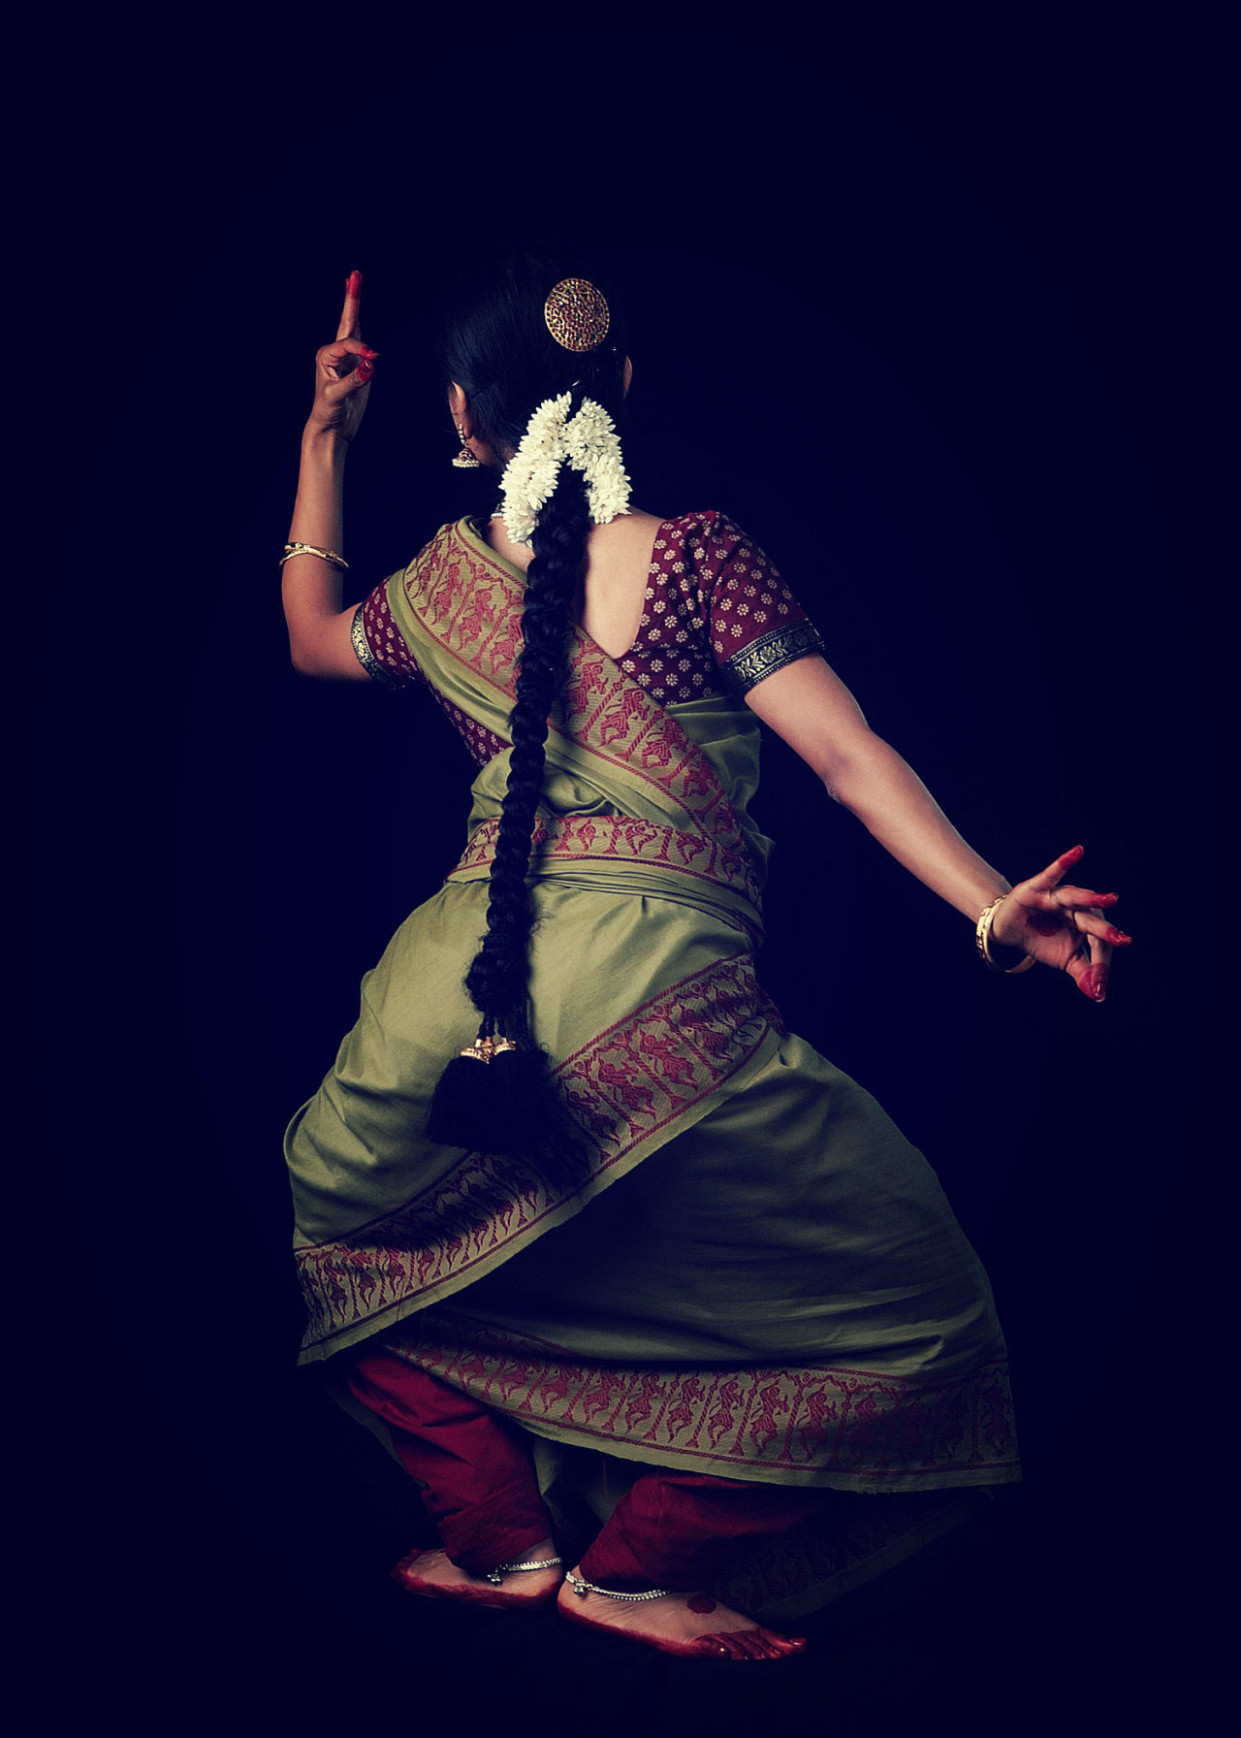 Maybe it's just me but Dance practice sarees are